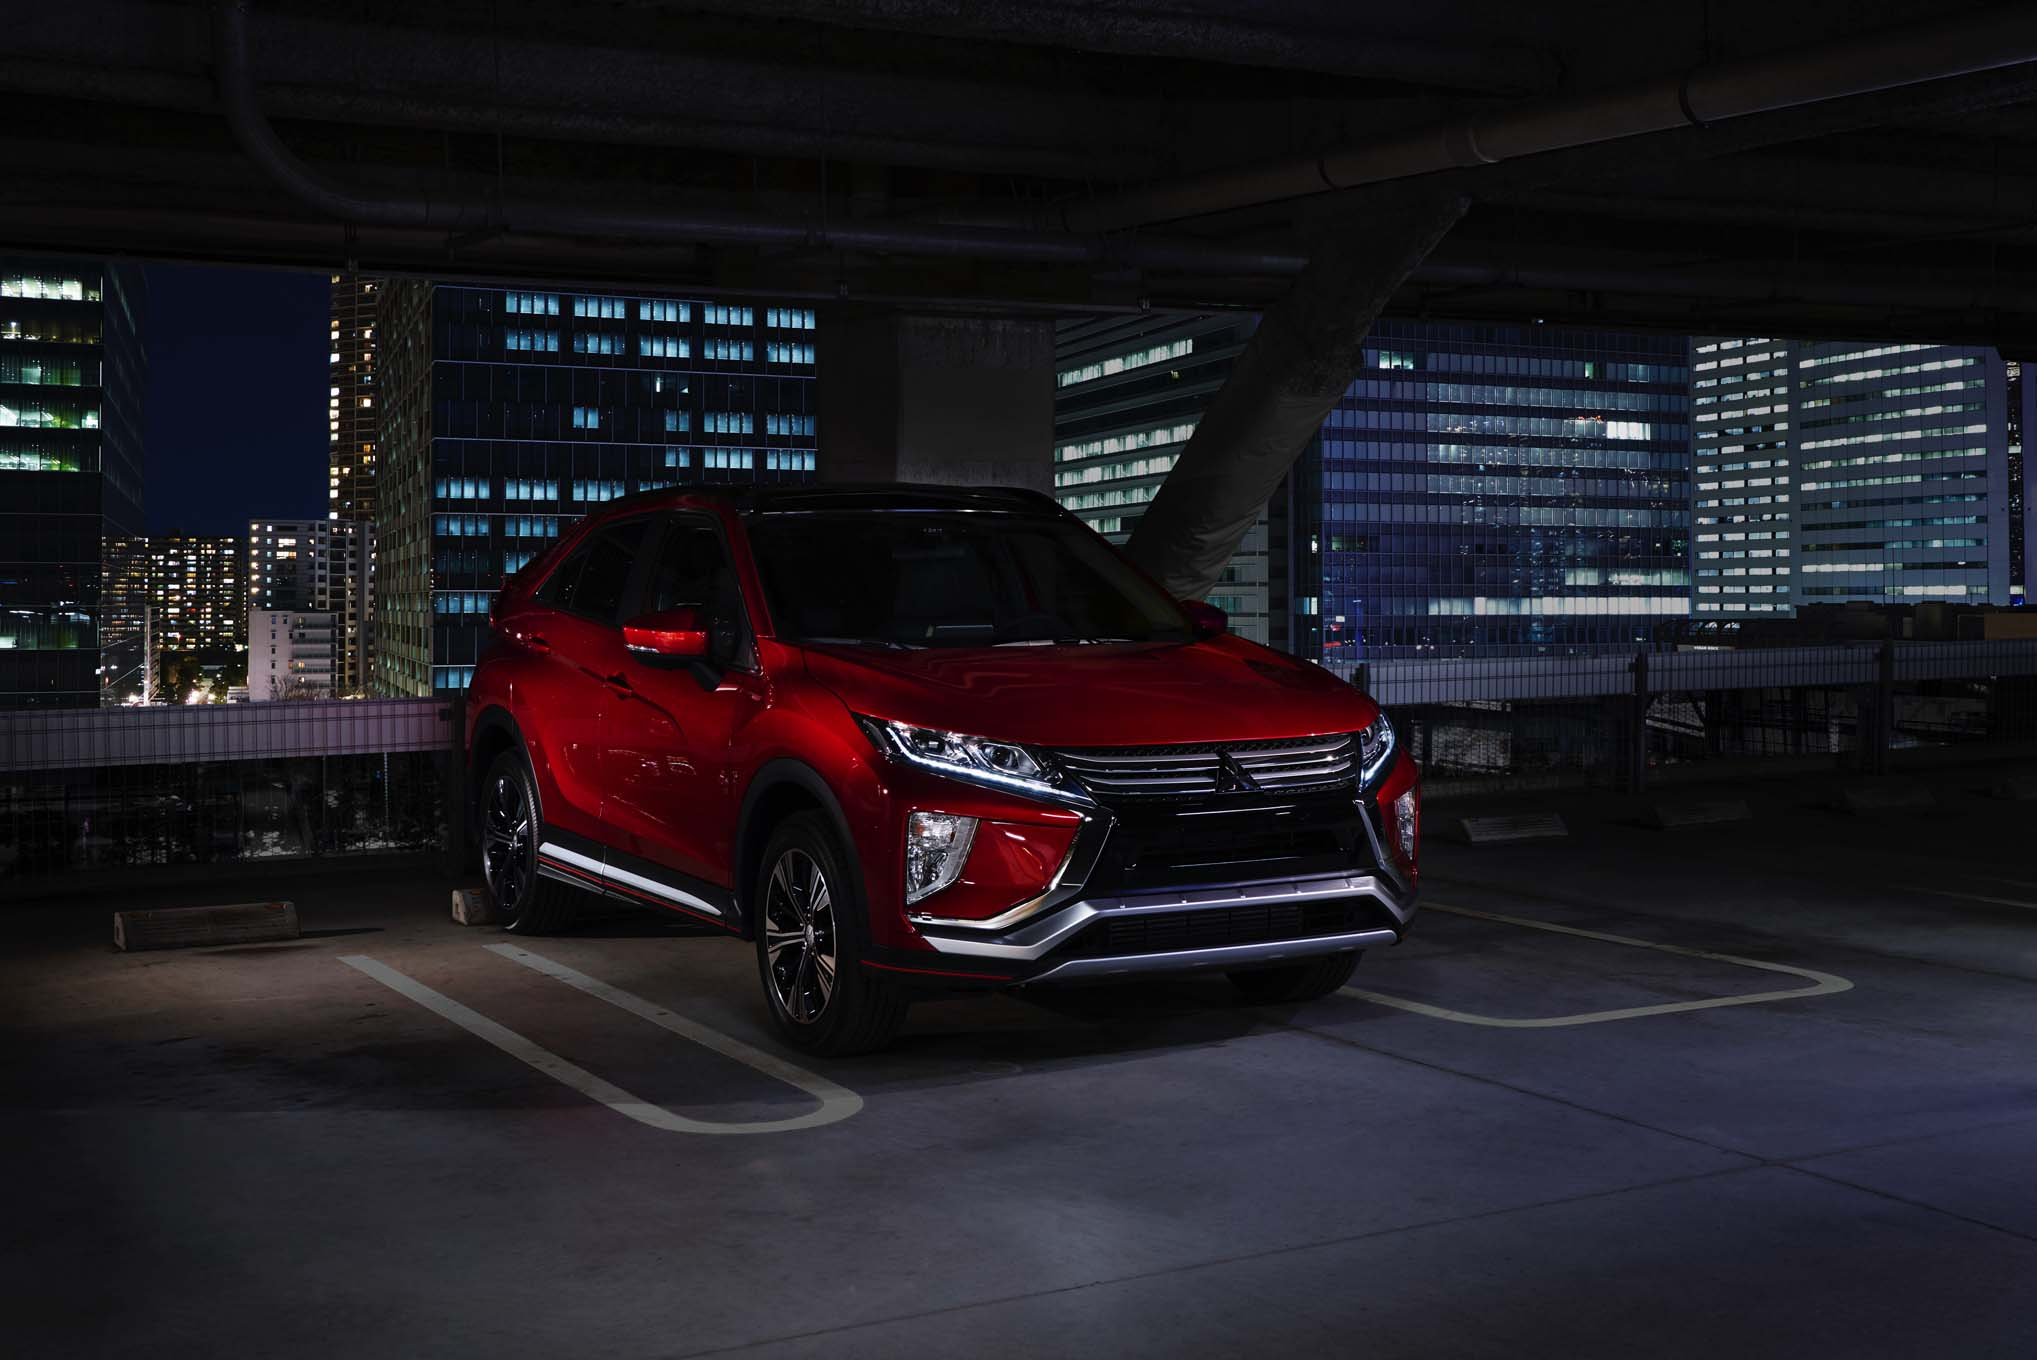 2018 Mitsubishi Eclipse Cross Front Three Quarter View 1